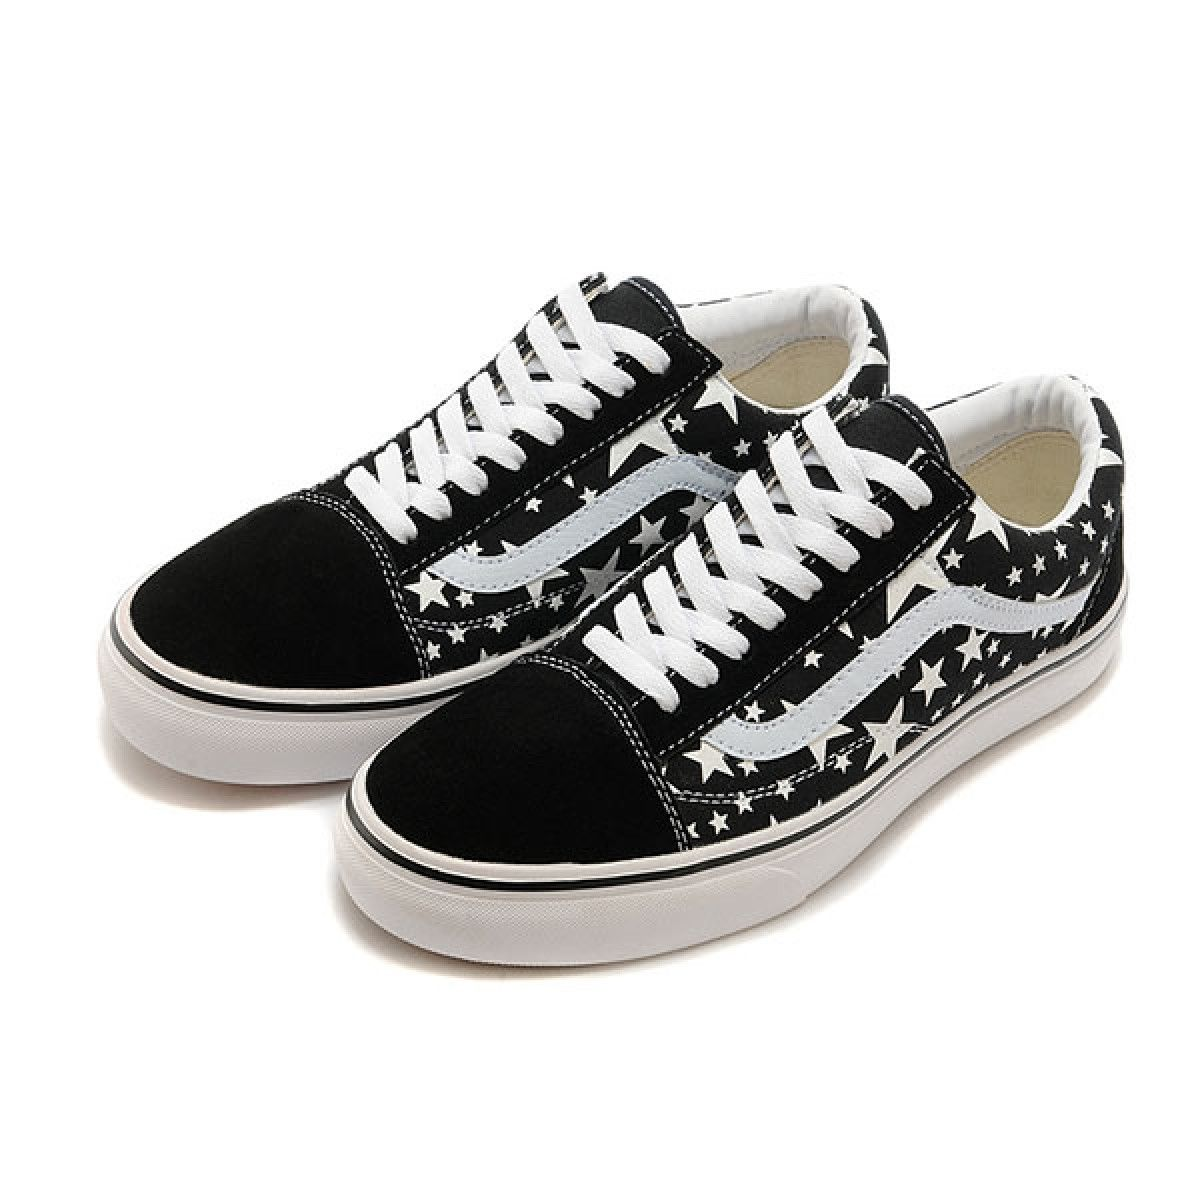 ff8288cb32 Vans Shoes Black Stars Old Skool Shoes Unisex Classic Canvas